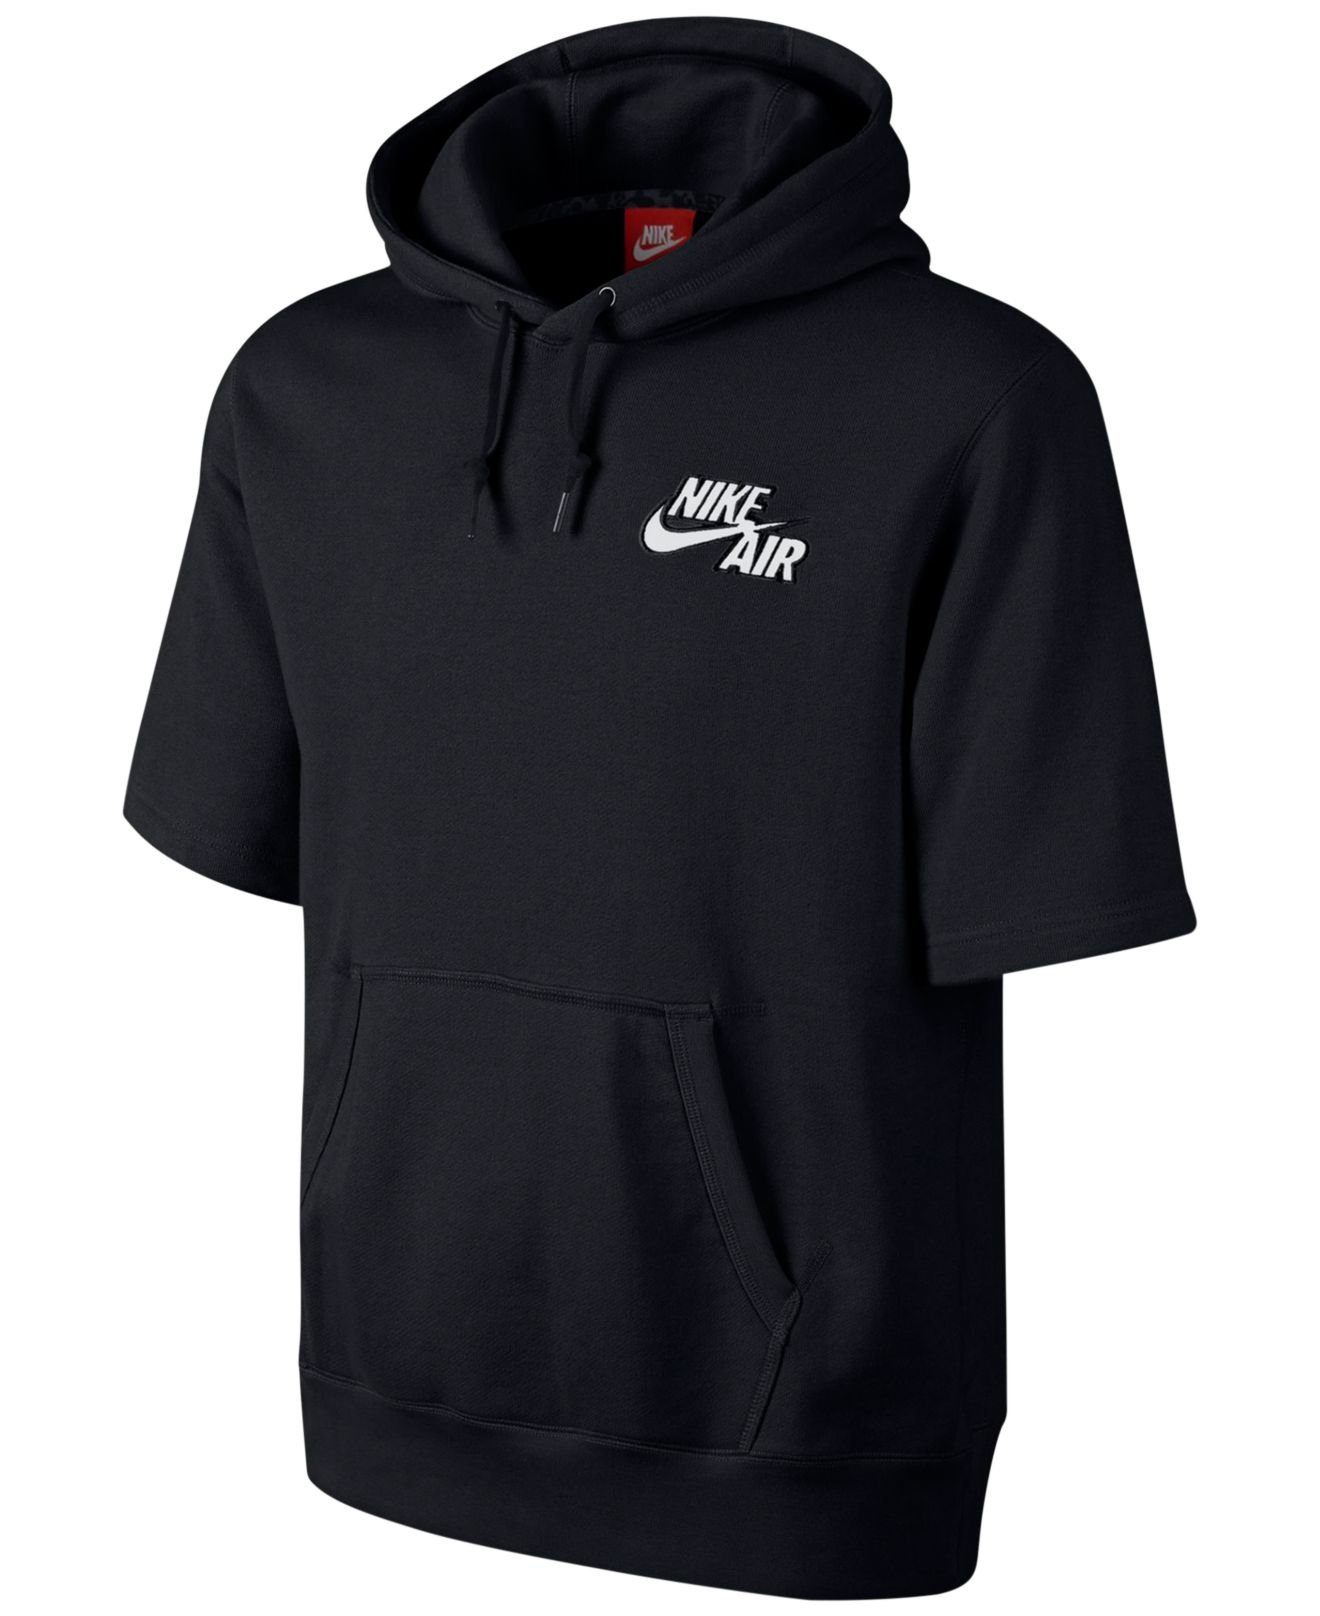 c5b6edf6f0ee Lyst - Nike Air Pivot Short-Sleeve Hoodie in Black for Men